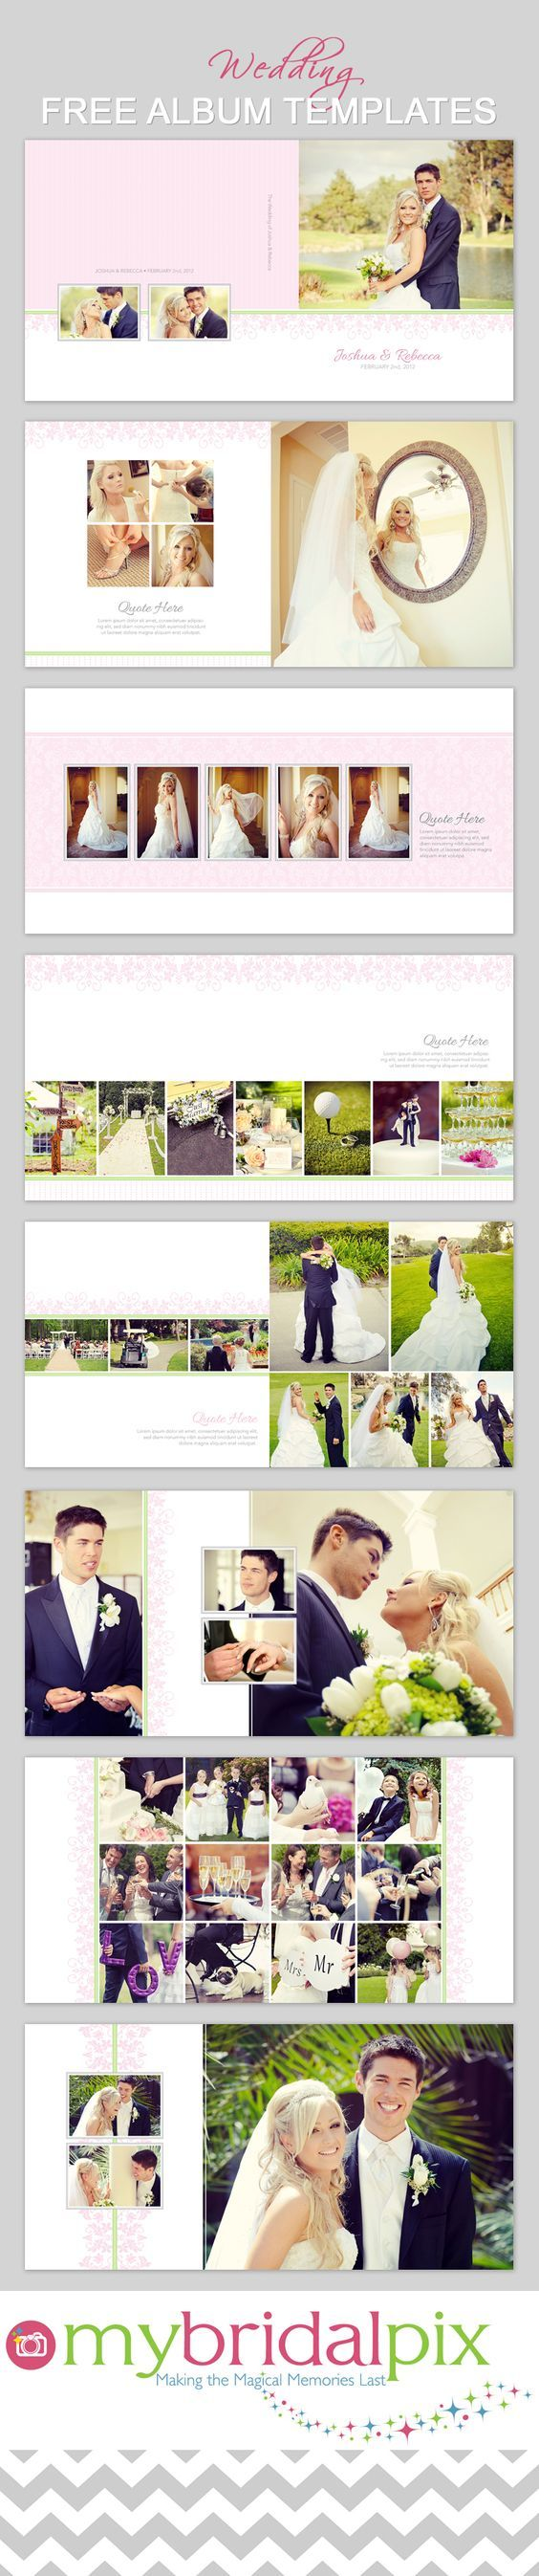 16 best wedding album desing images on pinterest wedding album our easy to use book making software and free designer templates make your diy wedding photo books a breeze to put together solutioingenieria Choice Image